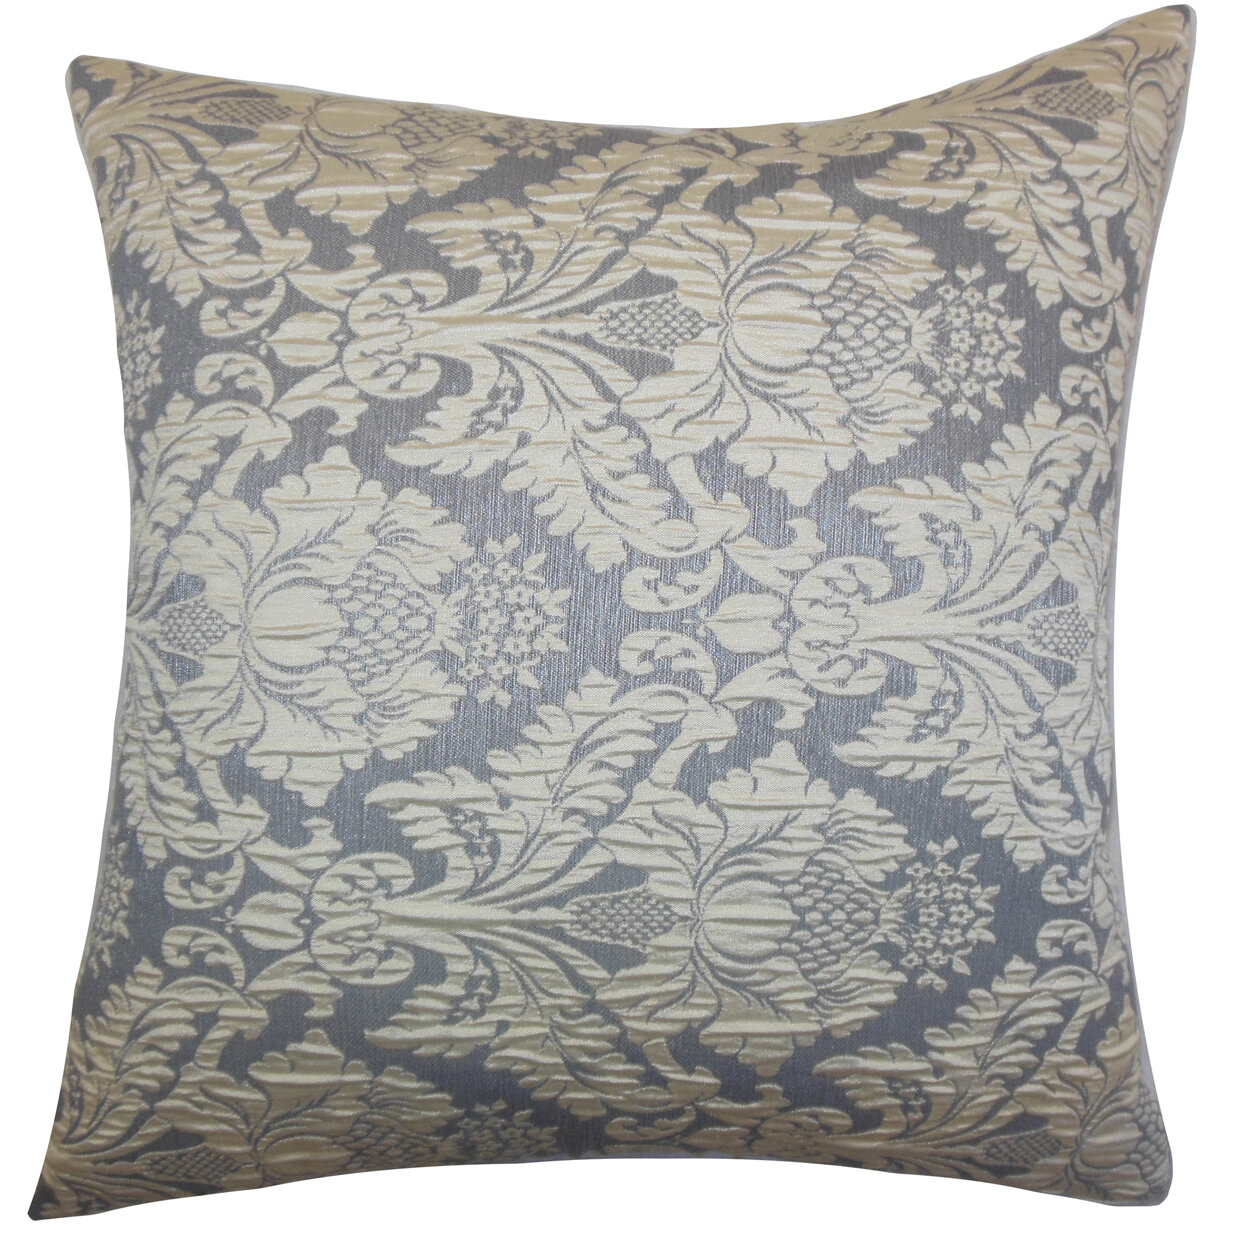 Damask Floor Throw Pillows You Ll Love In 2021 Wayfair